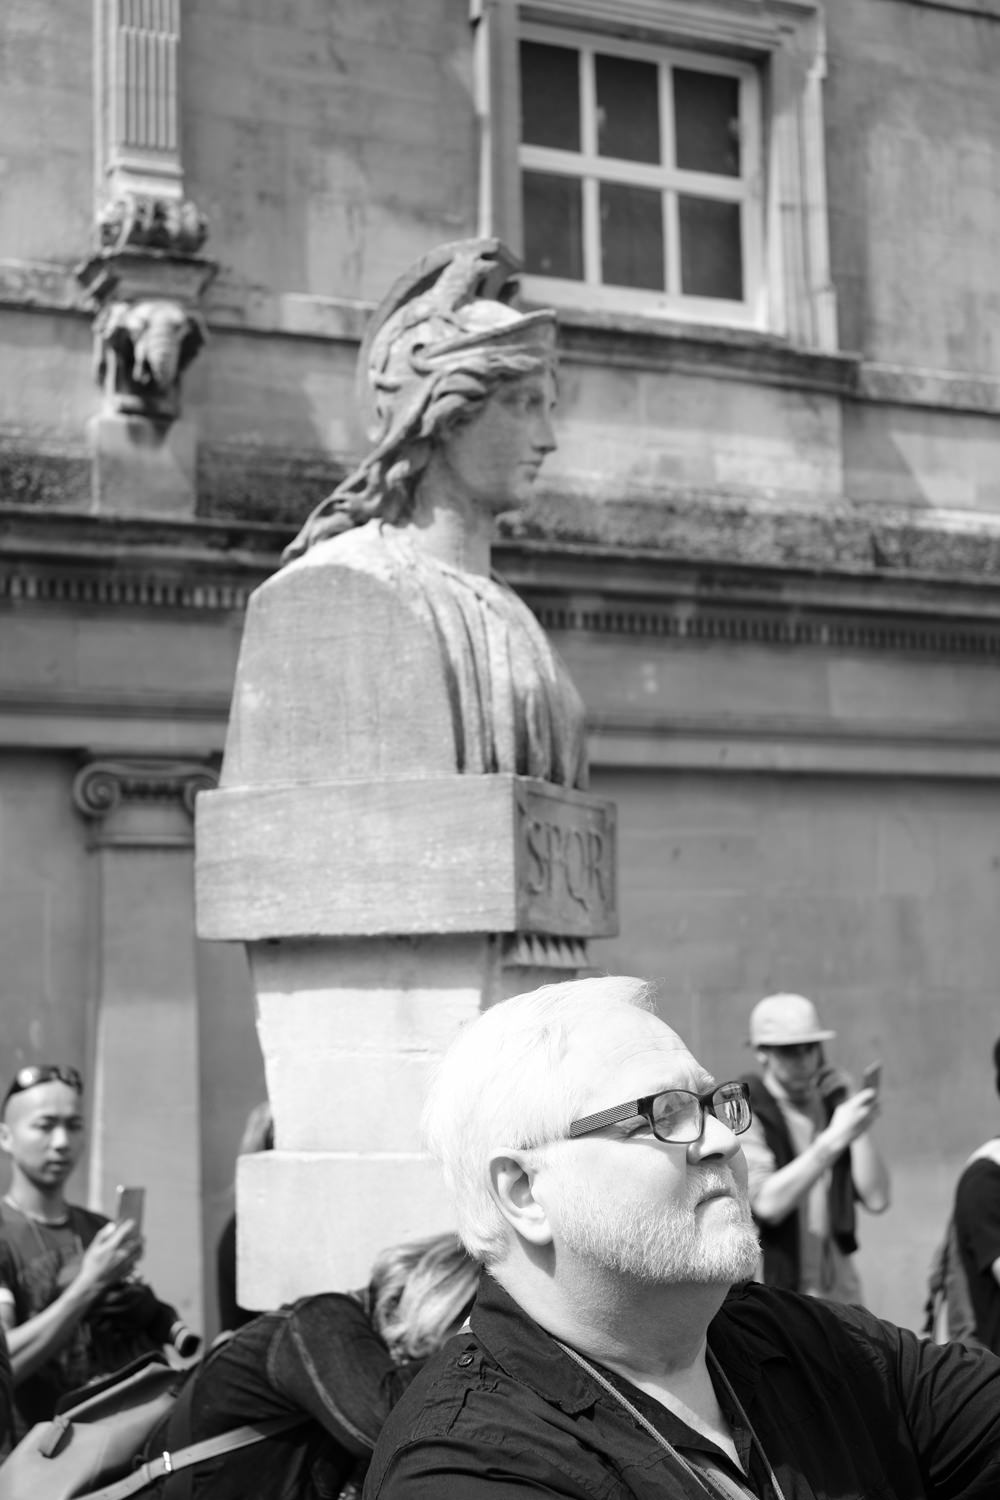 A man standing in front of a 19th century statue of a Roman man with 'SPQR' inscribed at the bottom.